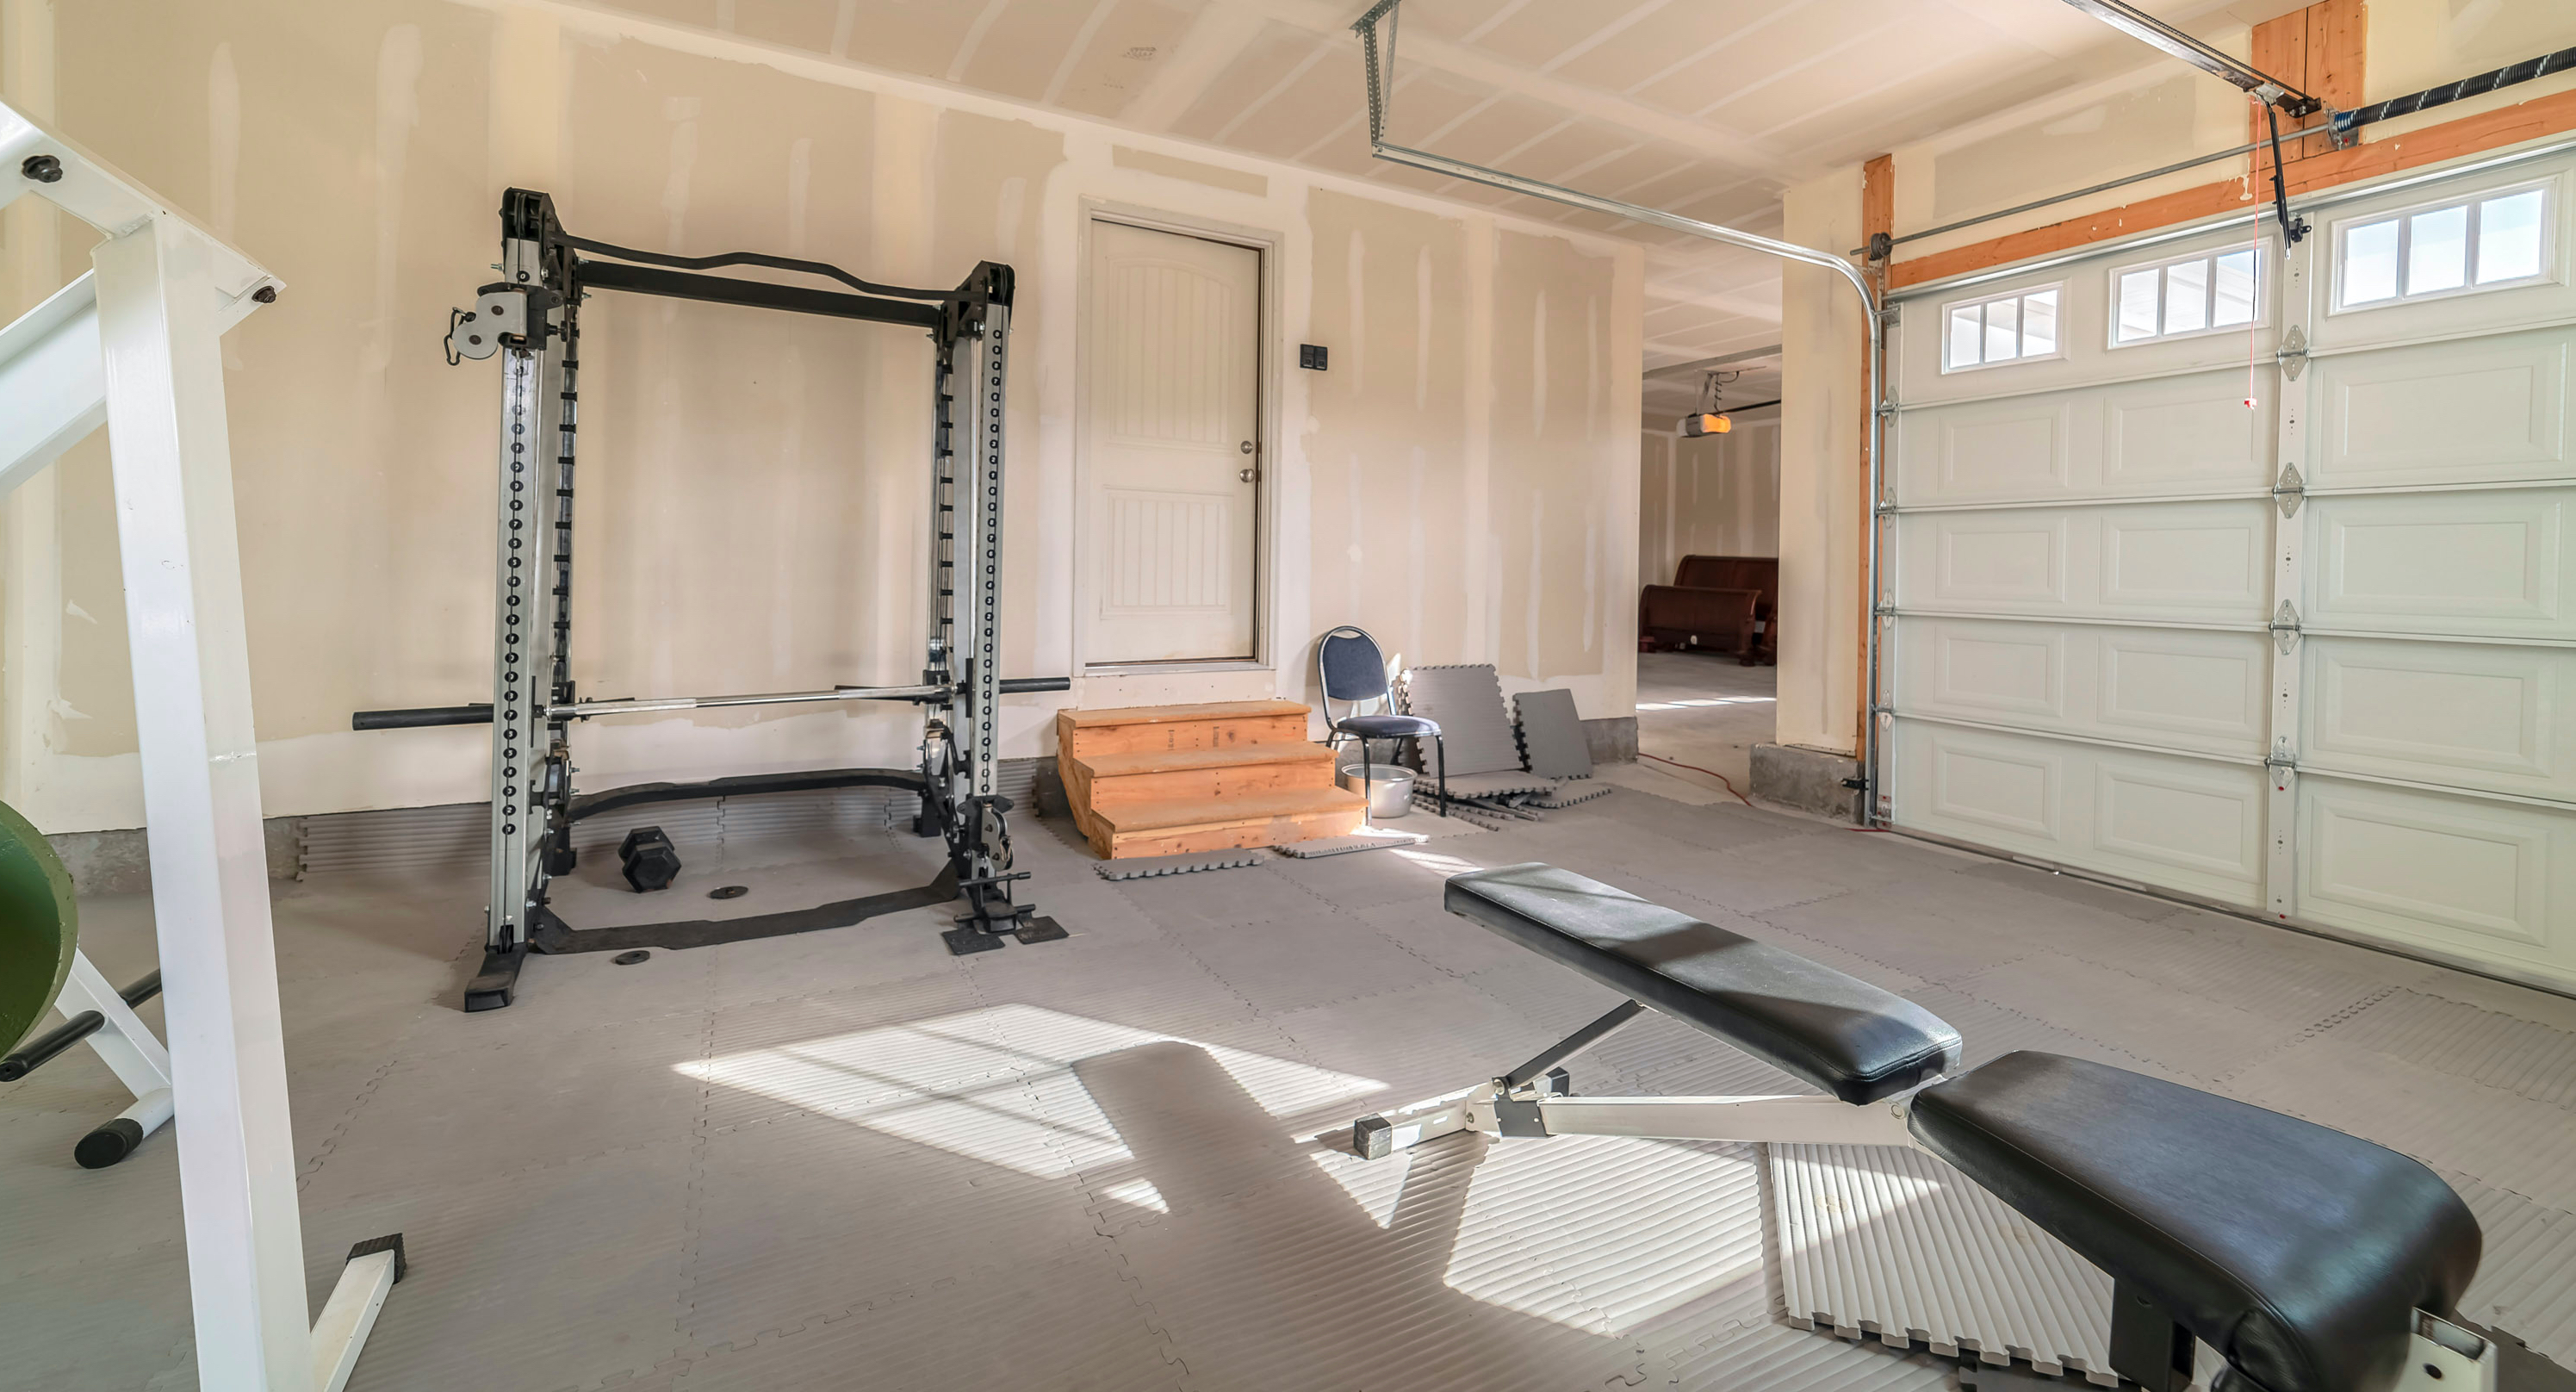 Gym in garage